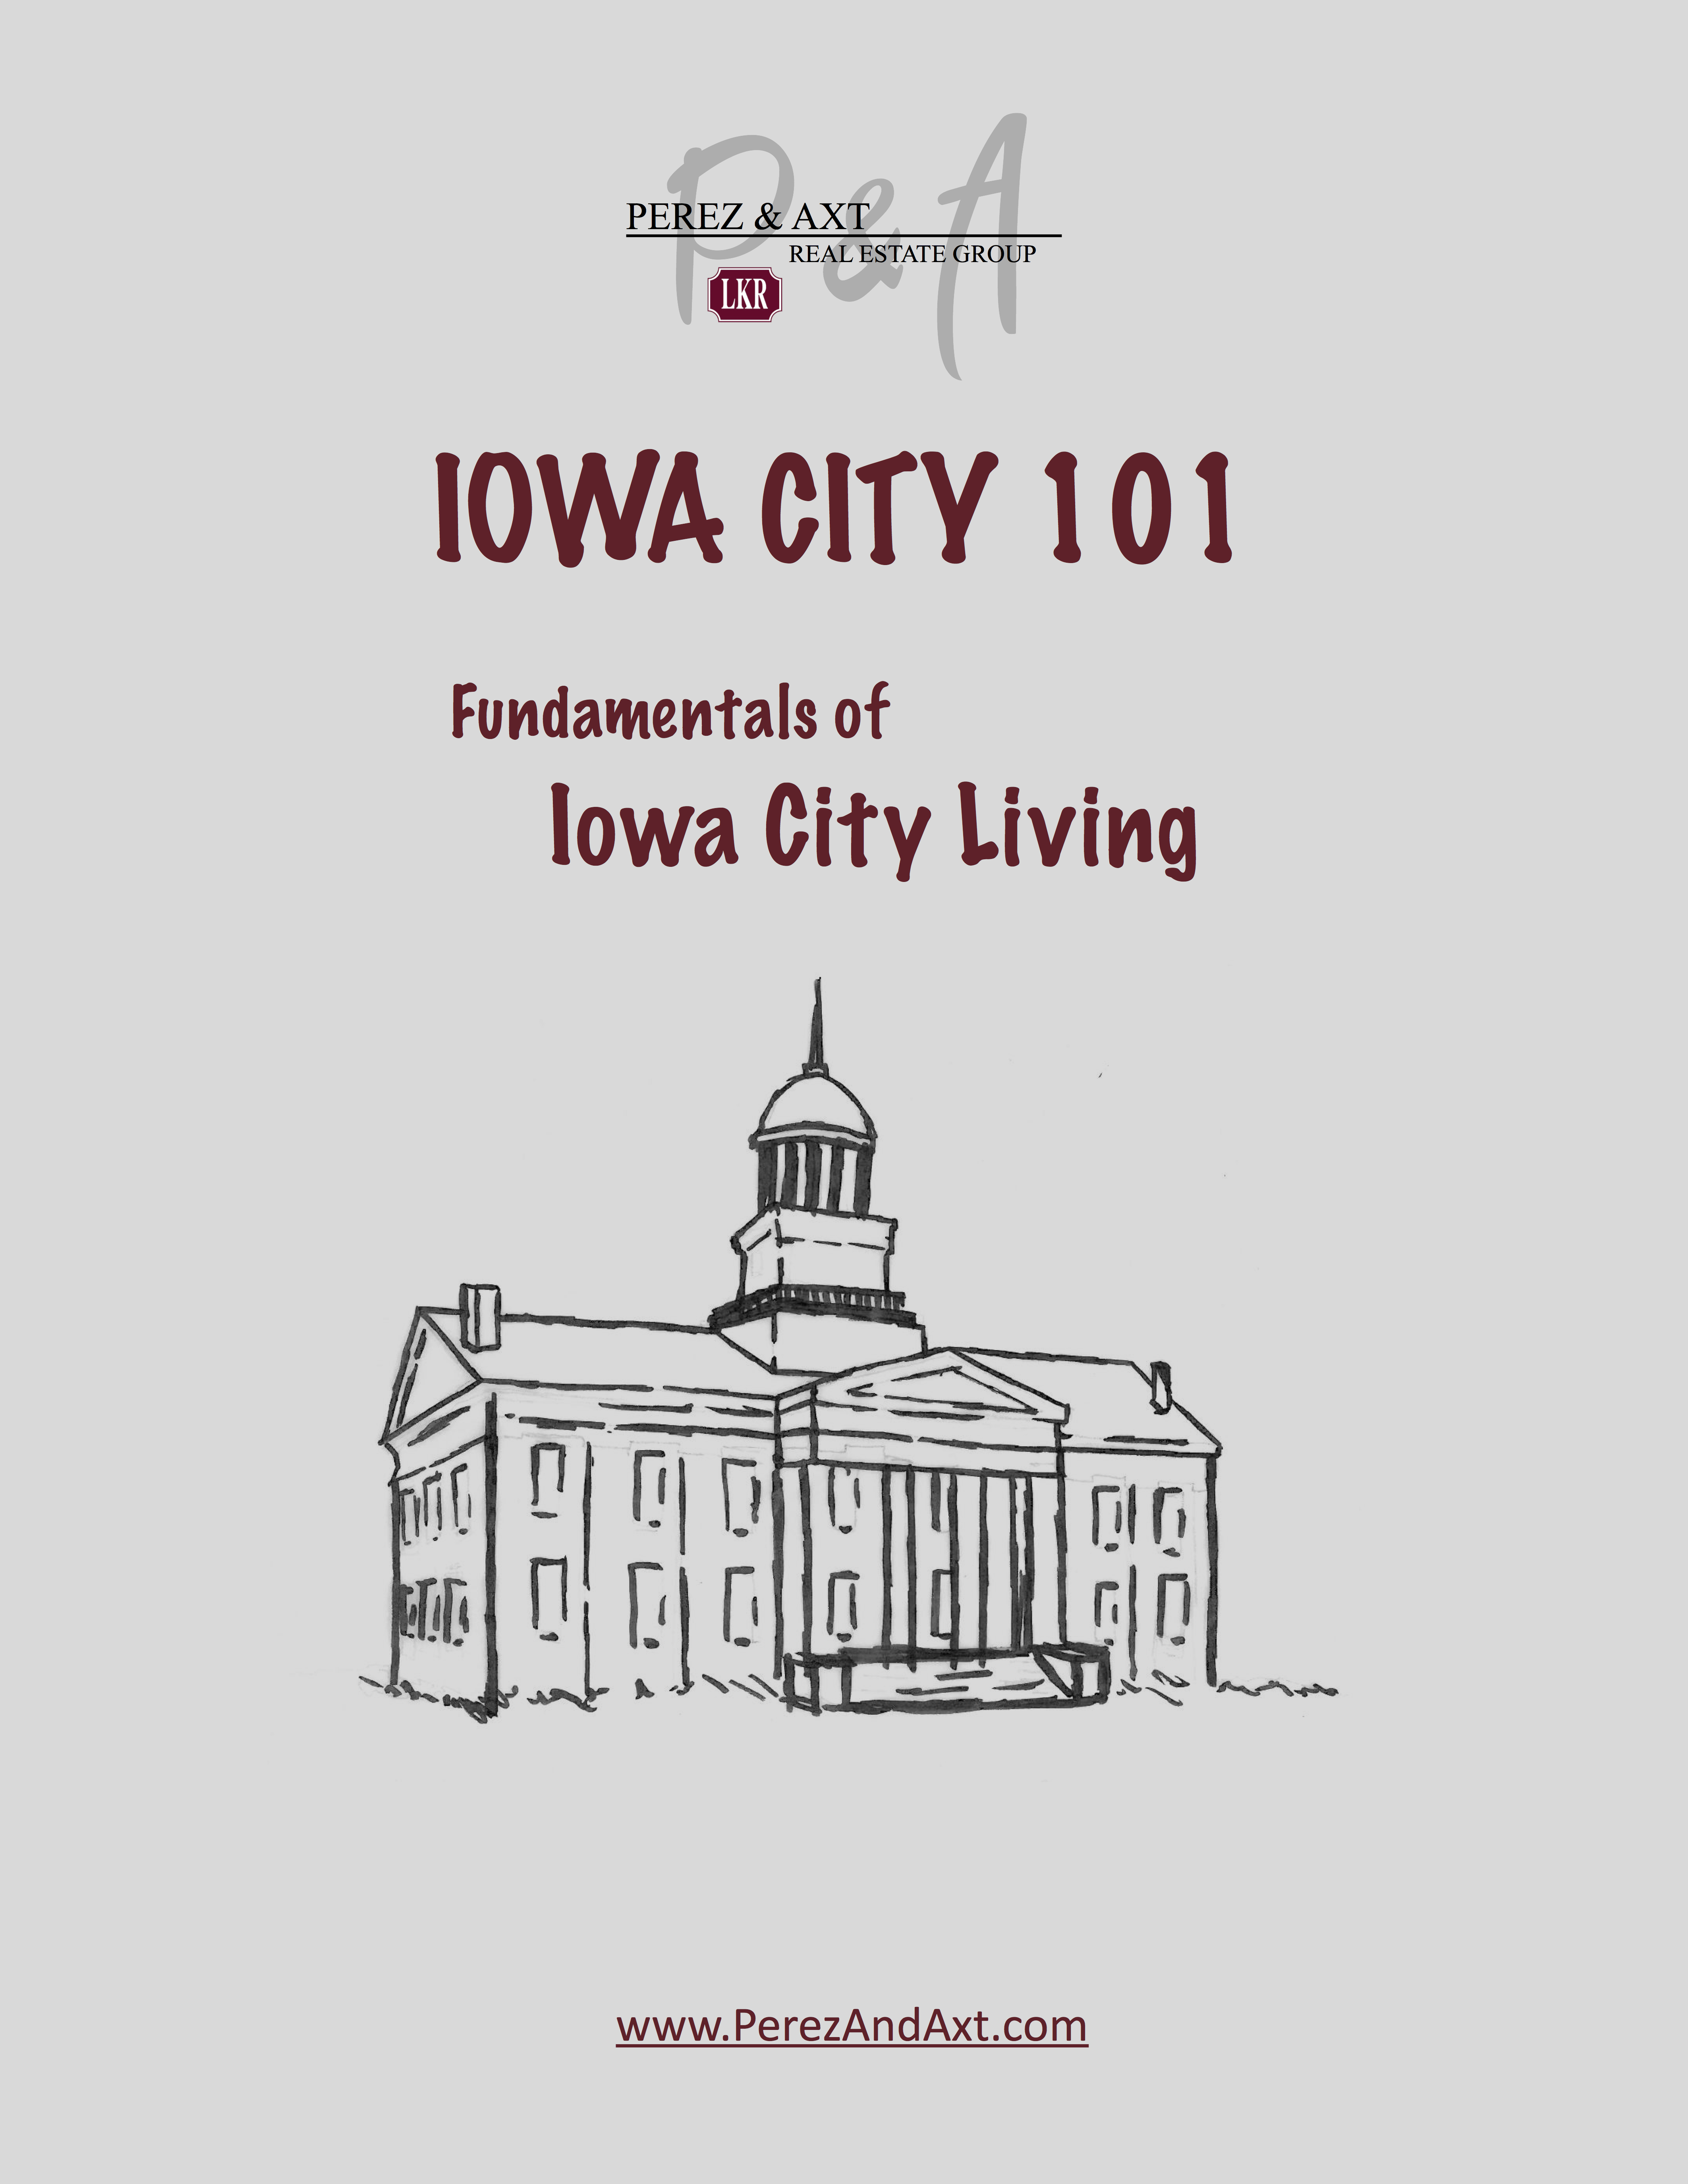 Iowa City 101 - a guide to living & selling my house in Iowa City,IA